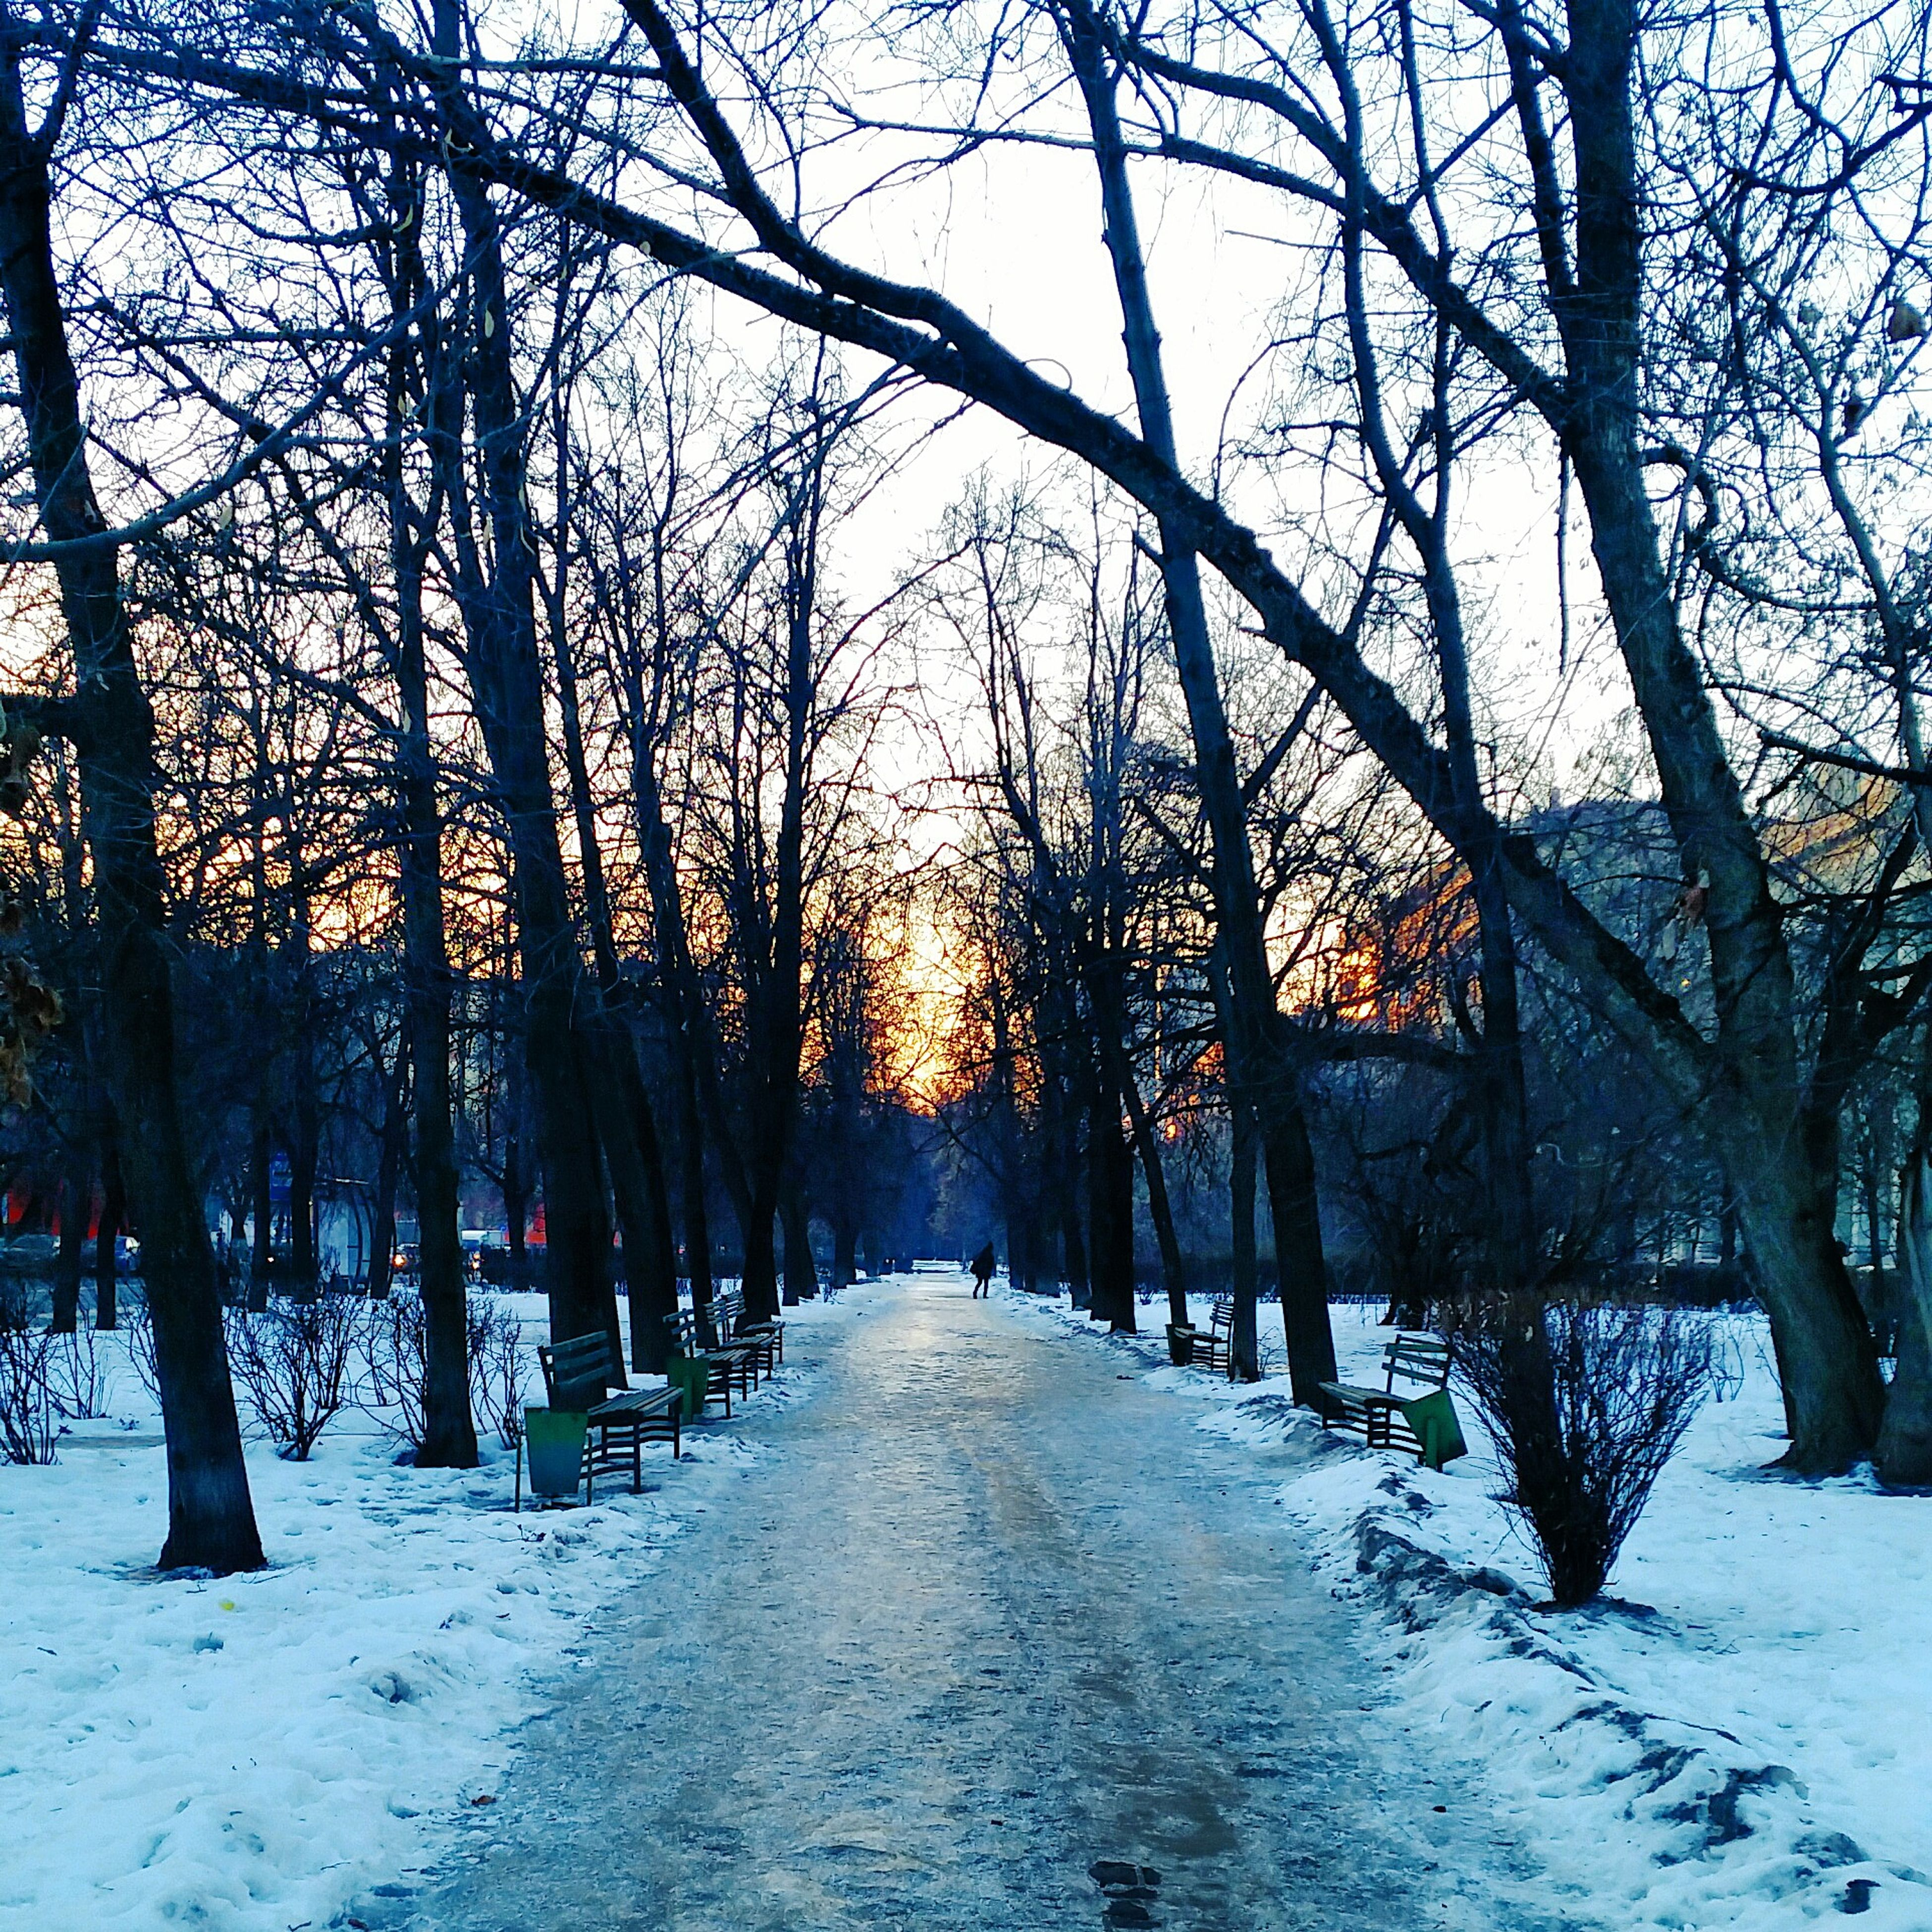 snow, winter, cold temperature, season, tree, the way forward, bare tree, diminishing perspective, treelined, covering, weather, nature, vanishing point, tranquility, tree trunk, sunset, beauty in nature, branch, tranquil scene, road